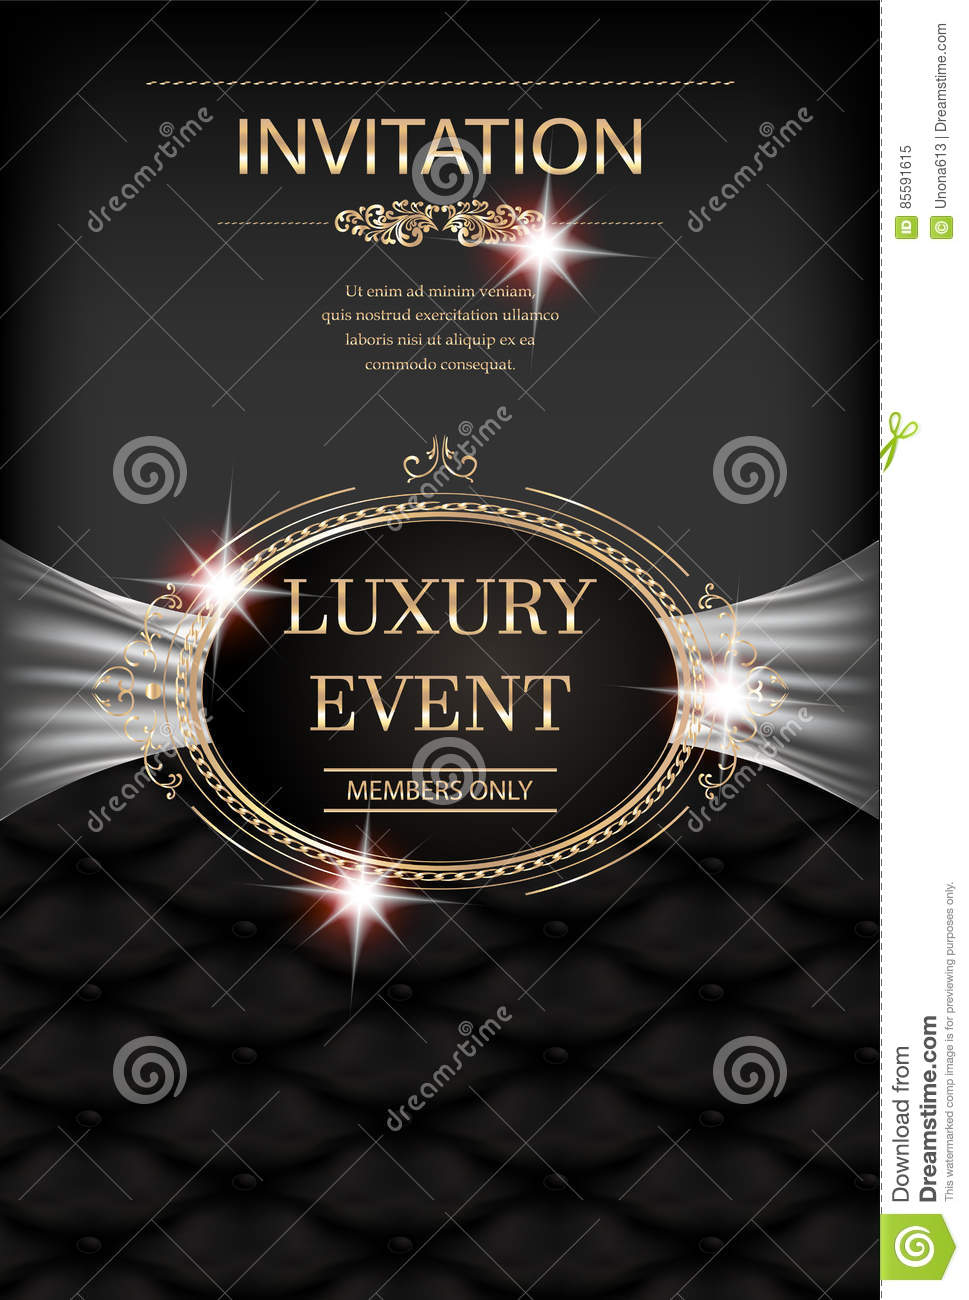 luxury event invitation card with vintage frame leather background